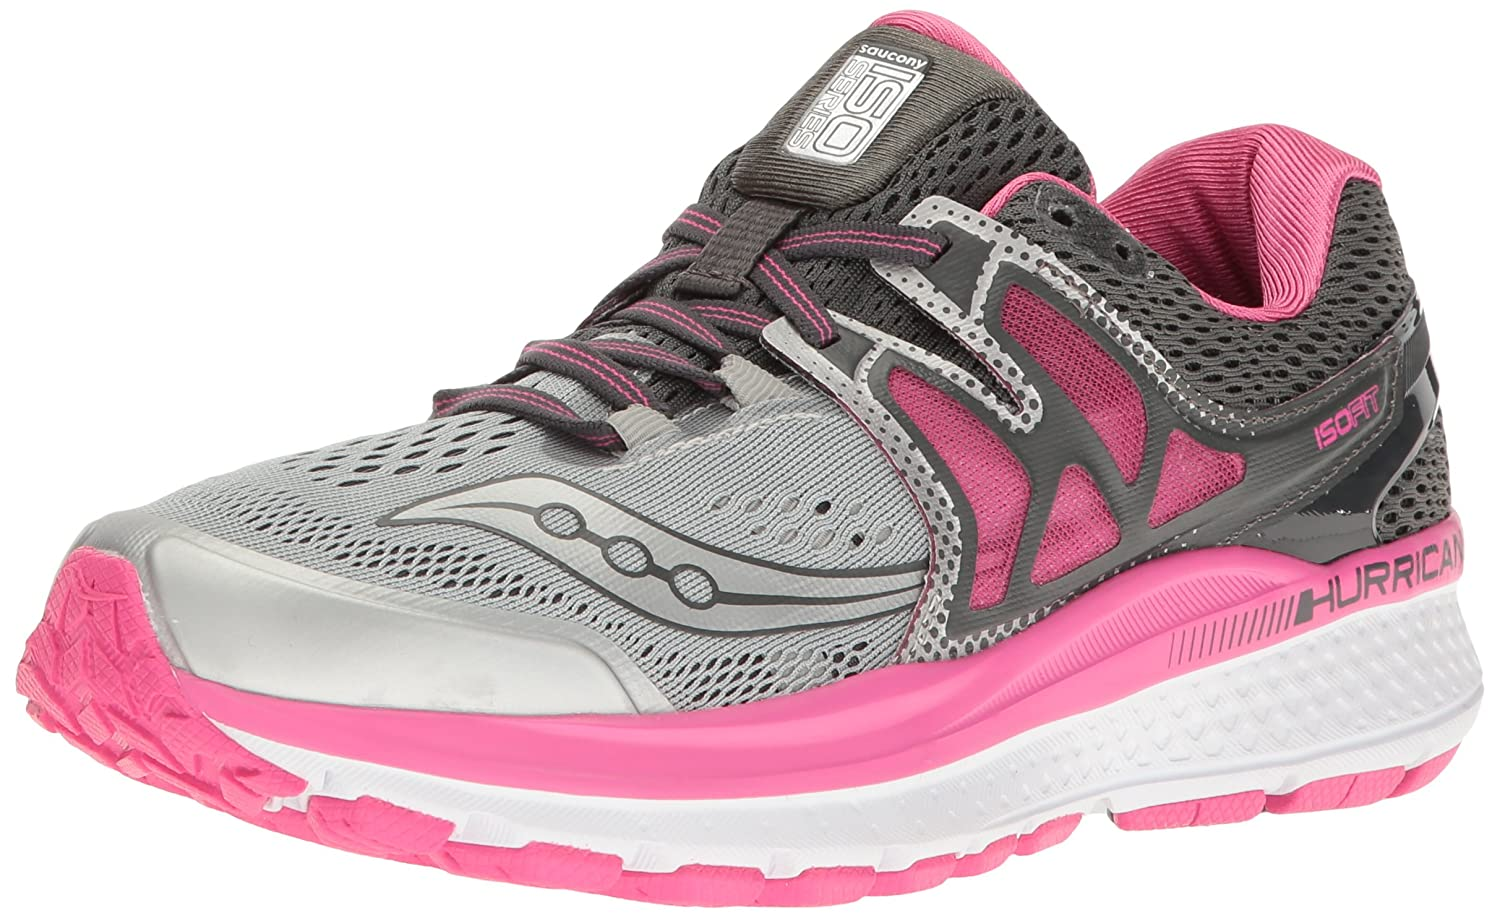 Saucony Women's Hurricane ISO 3 Running Shoe B01GIJR2L6 6.5 W US|Grey/Pink/White